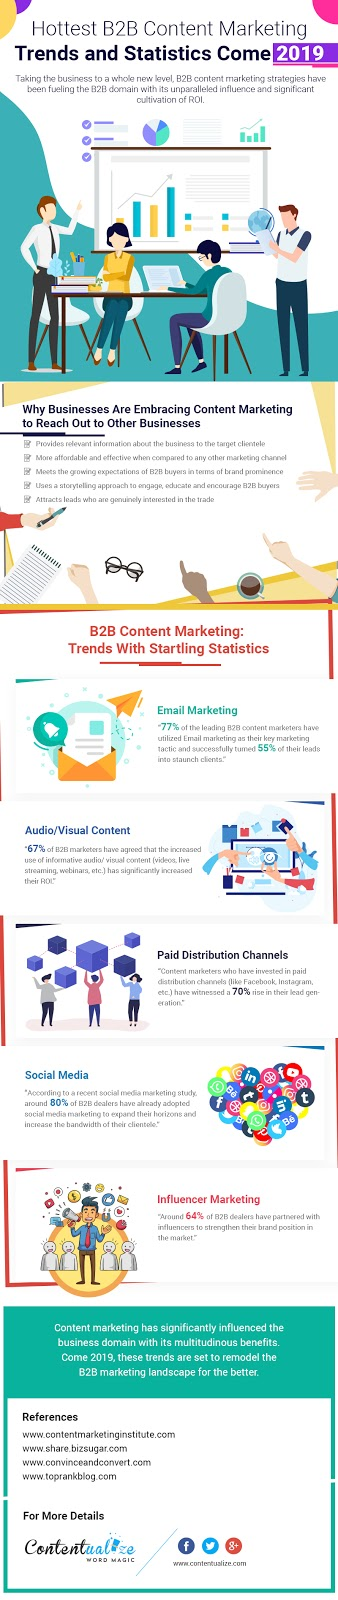 Beginner's Guide to B2B Content Marketing for Businesses - Infographic